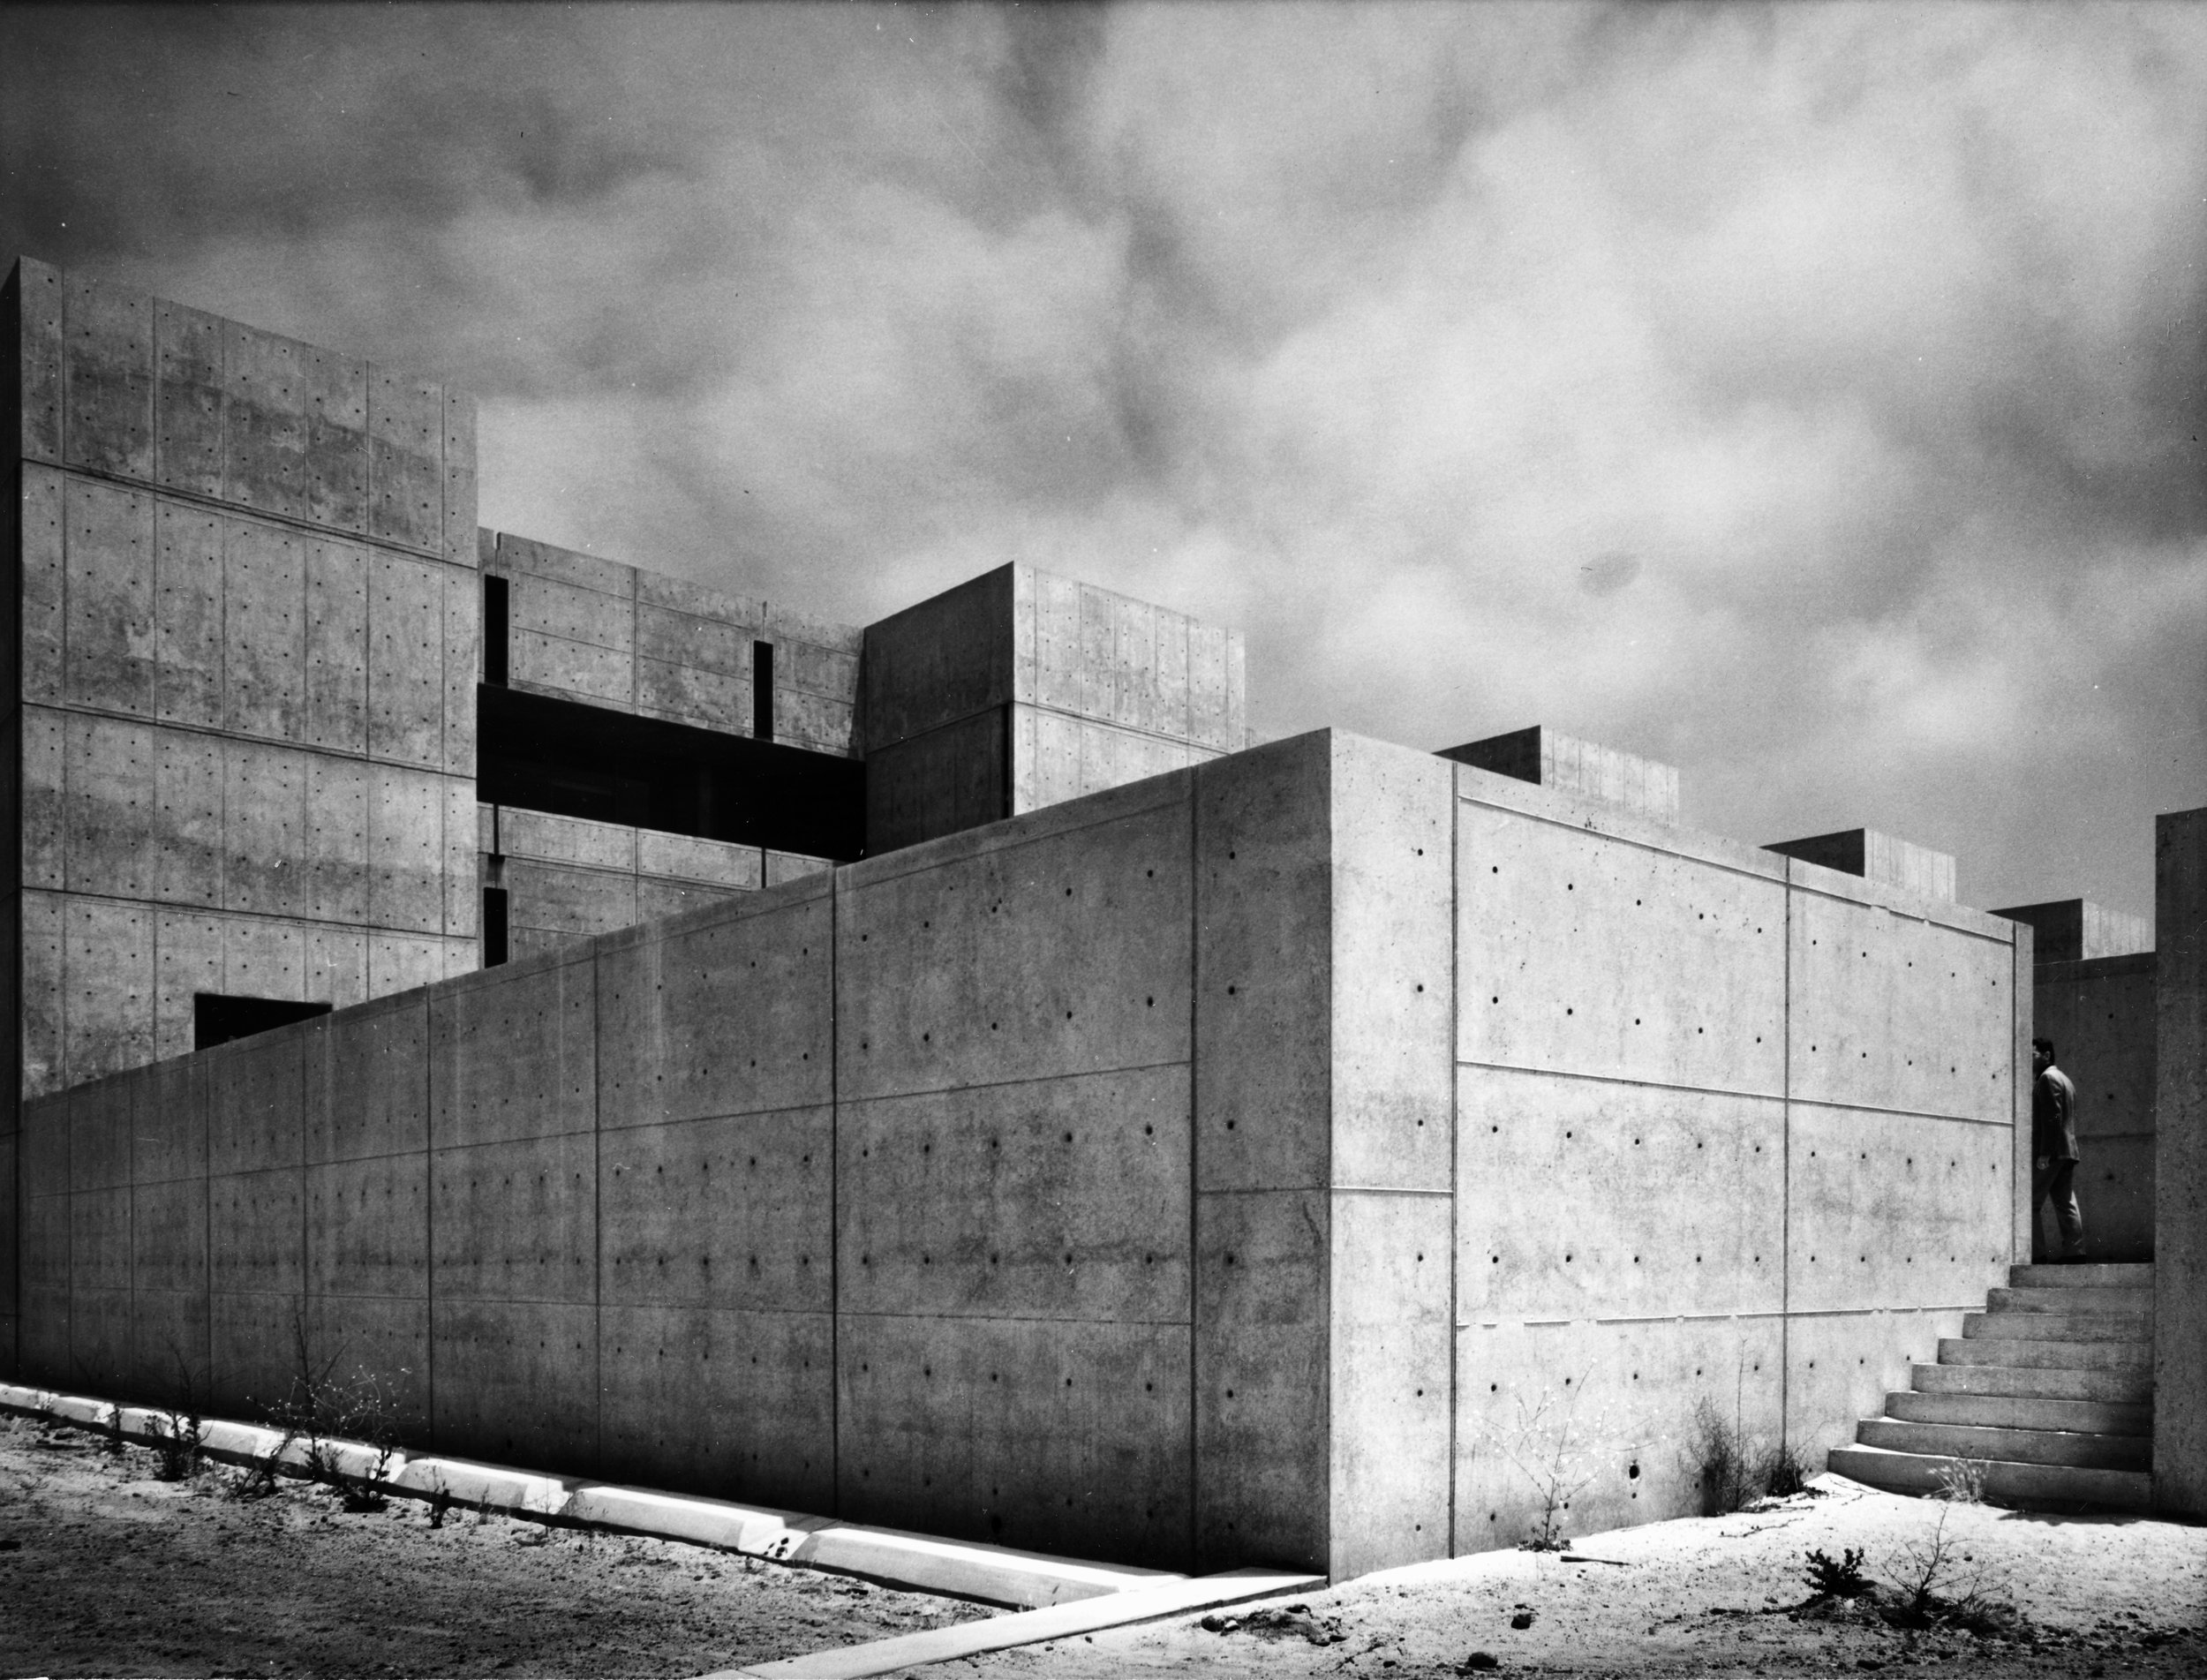 Salk Institute for Biological Studies 1966